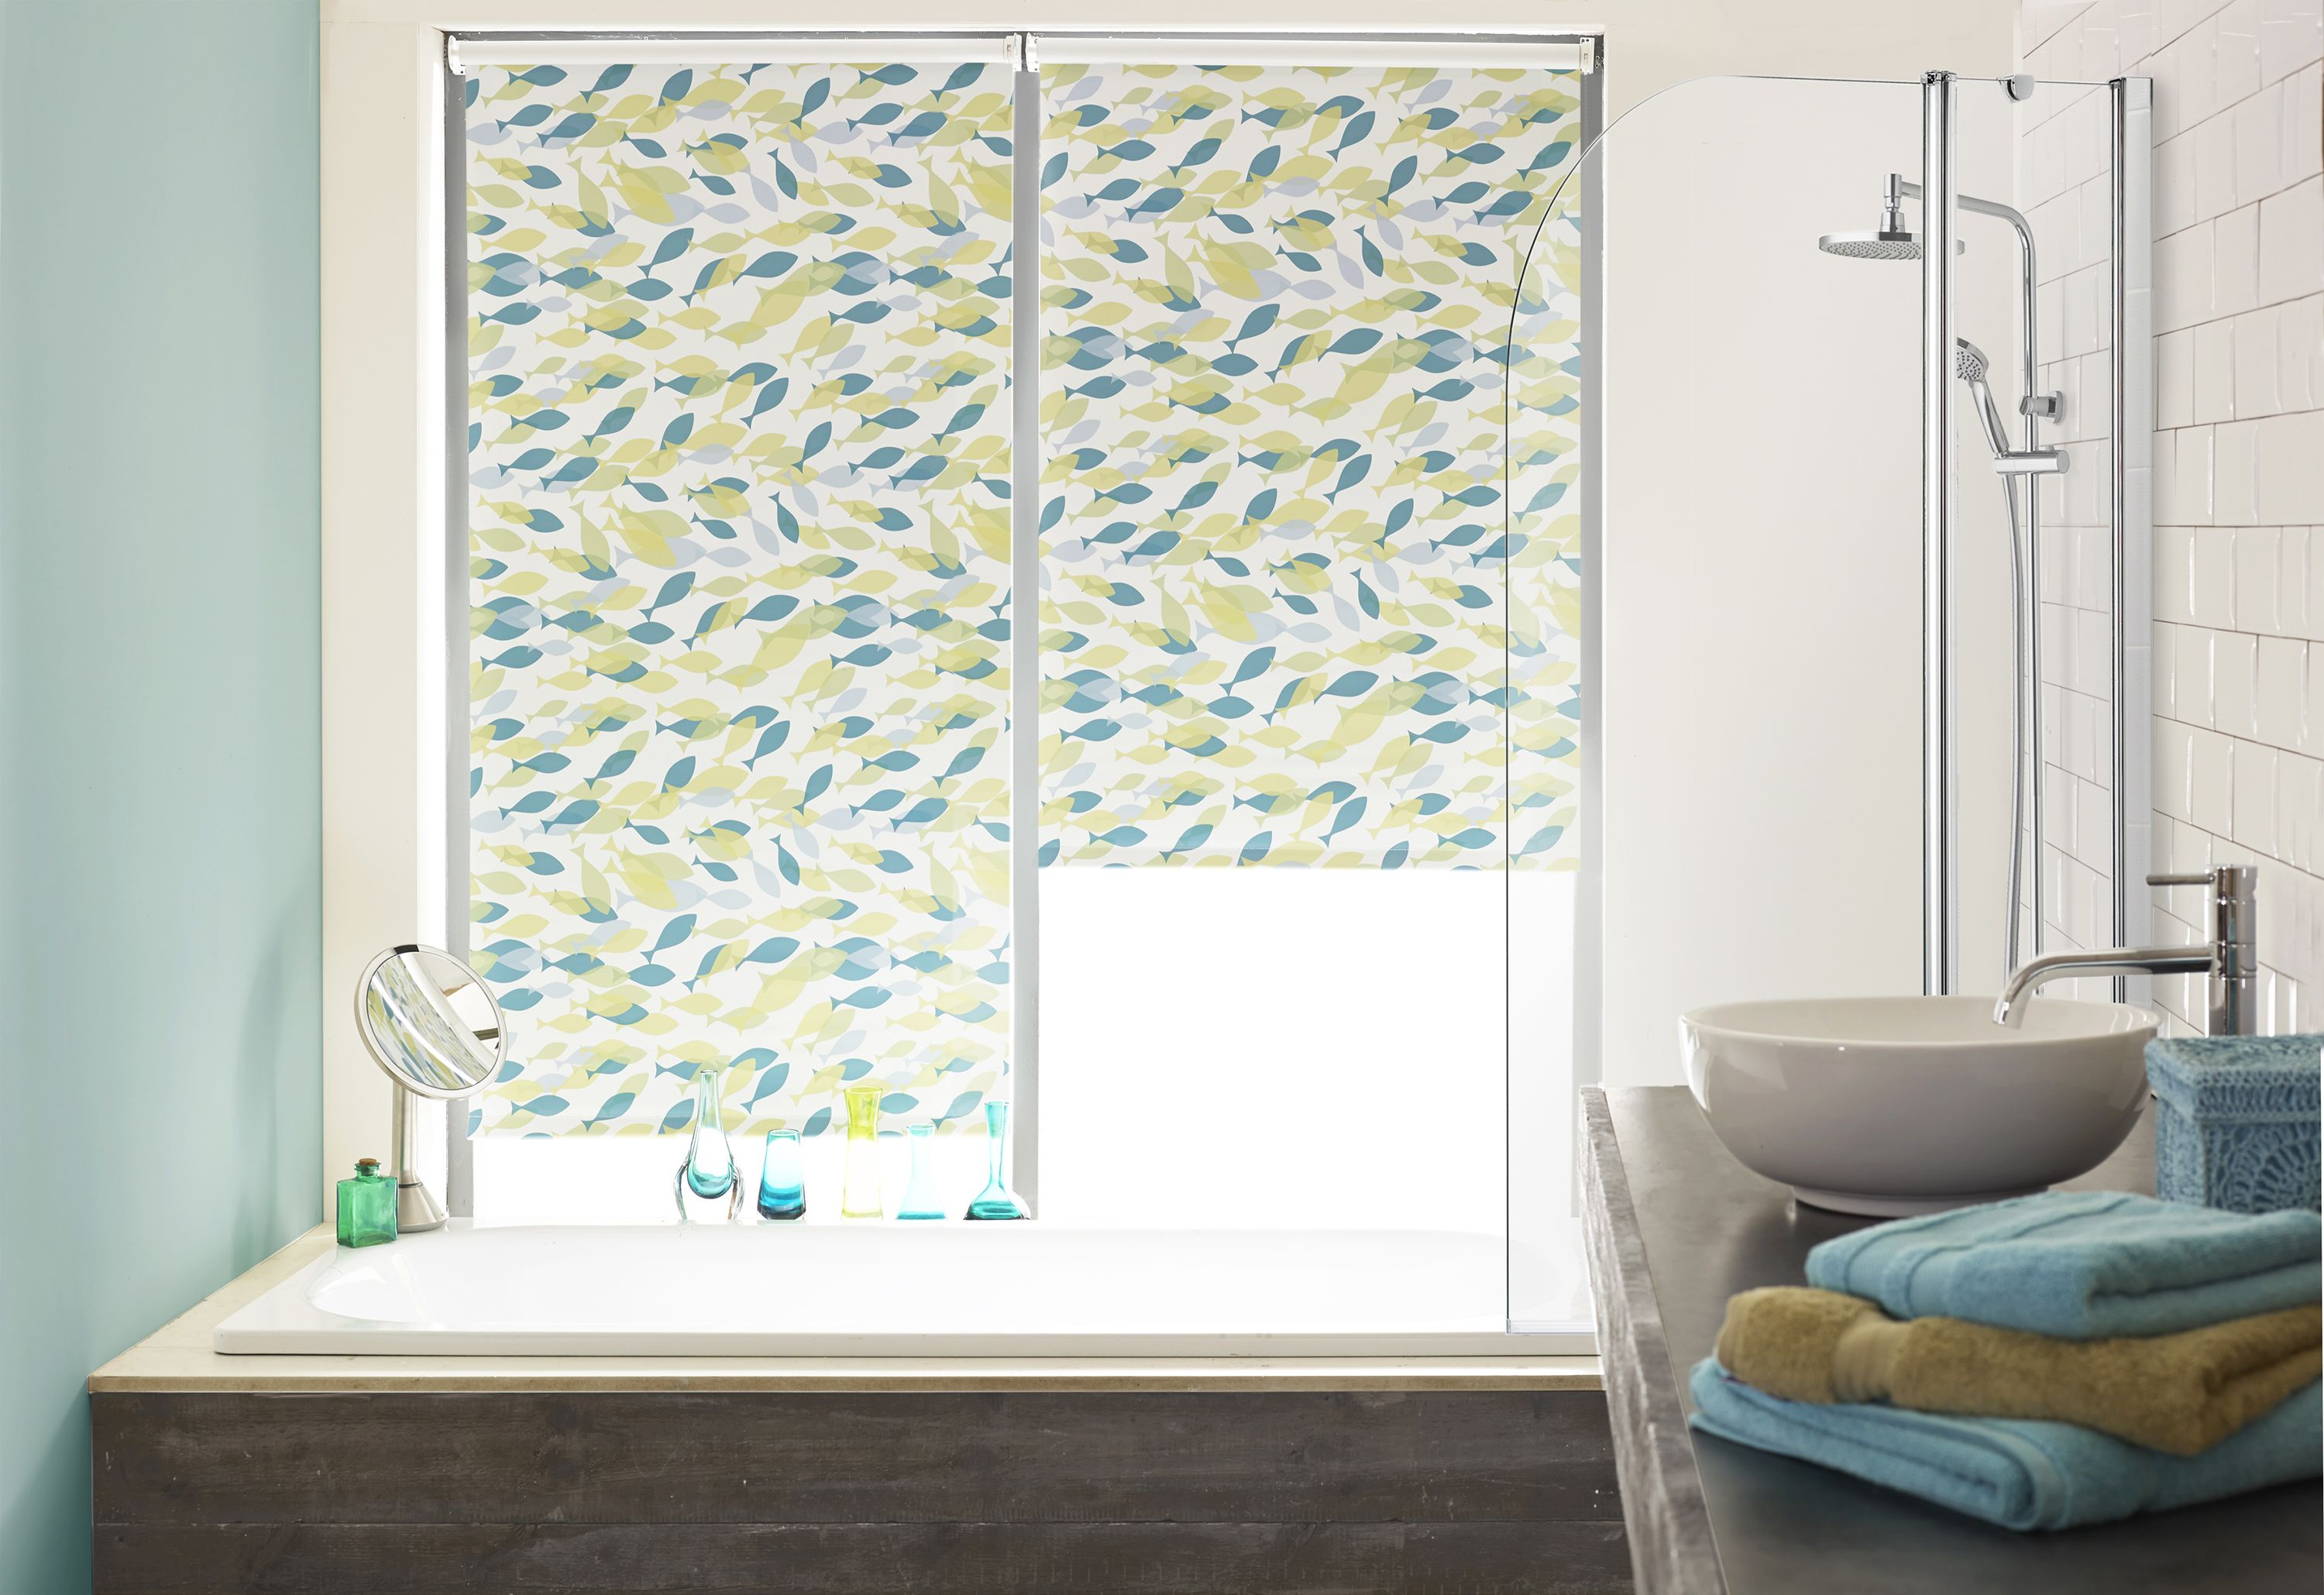 Guaranteed To Bring A Smile To The Face Of Everyone Who Sees It - Waterproof roller blind for bathroom for bathroom decor ideas